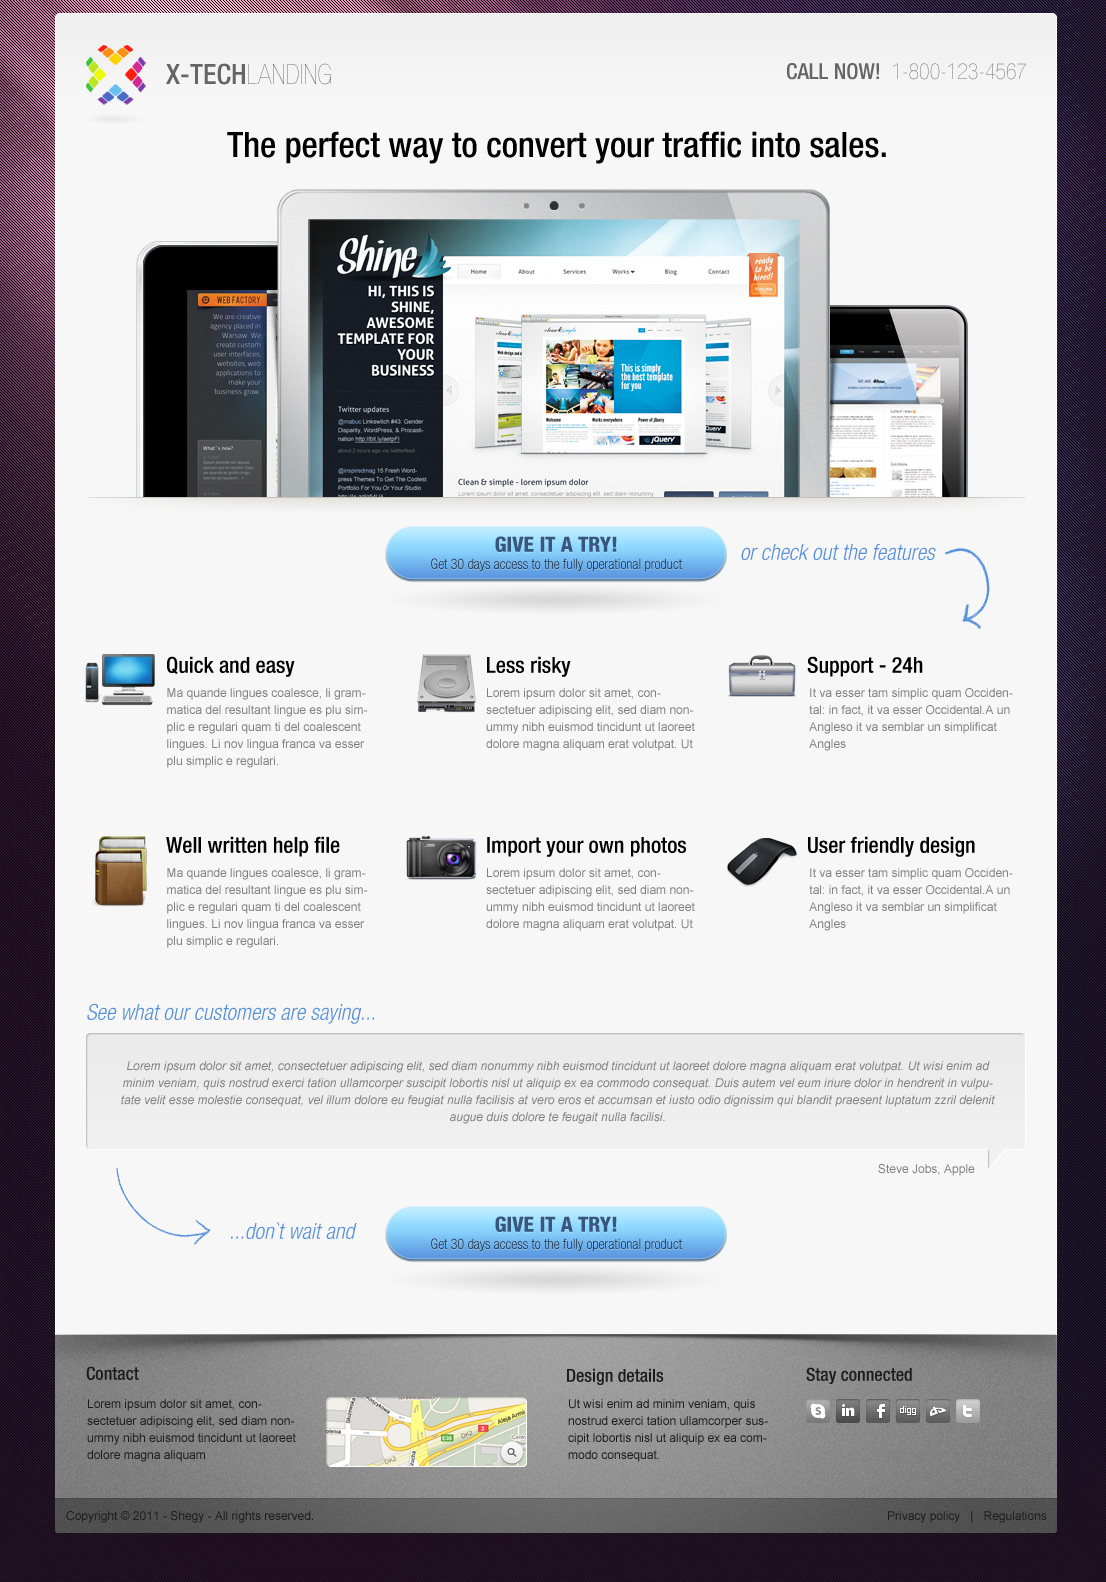 X-Tech Landing Page (.psd) | Free Design Resources for All